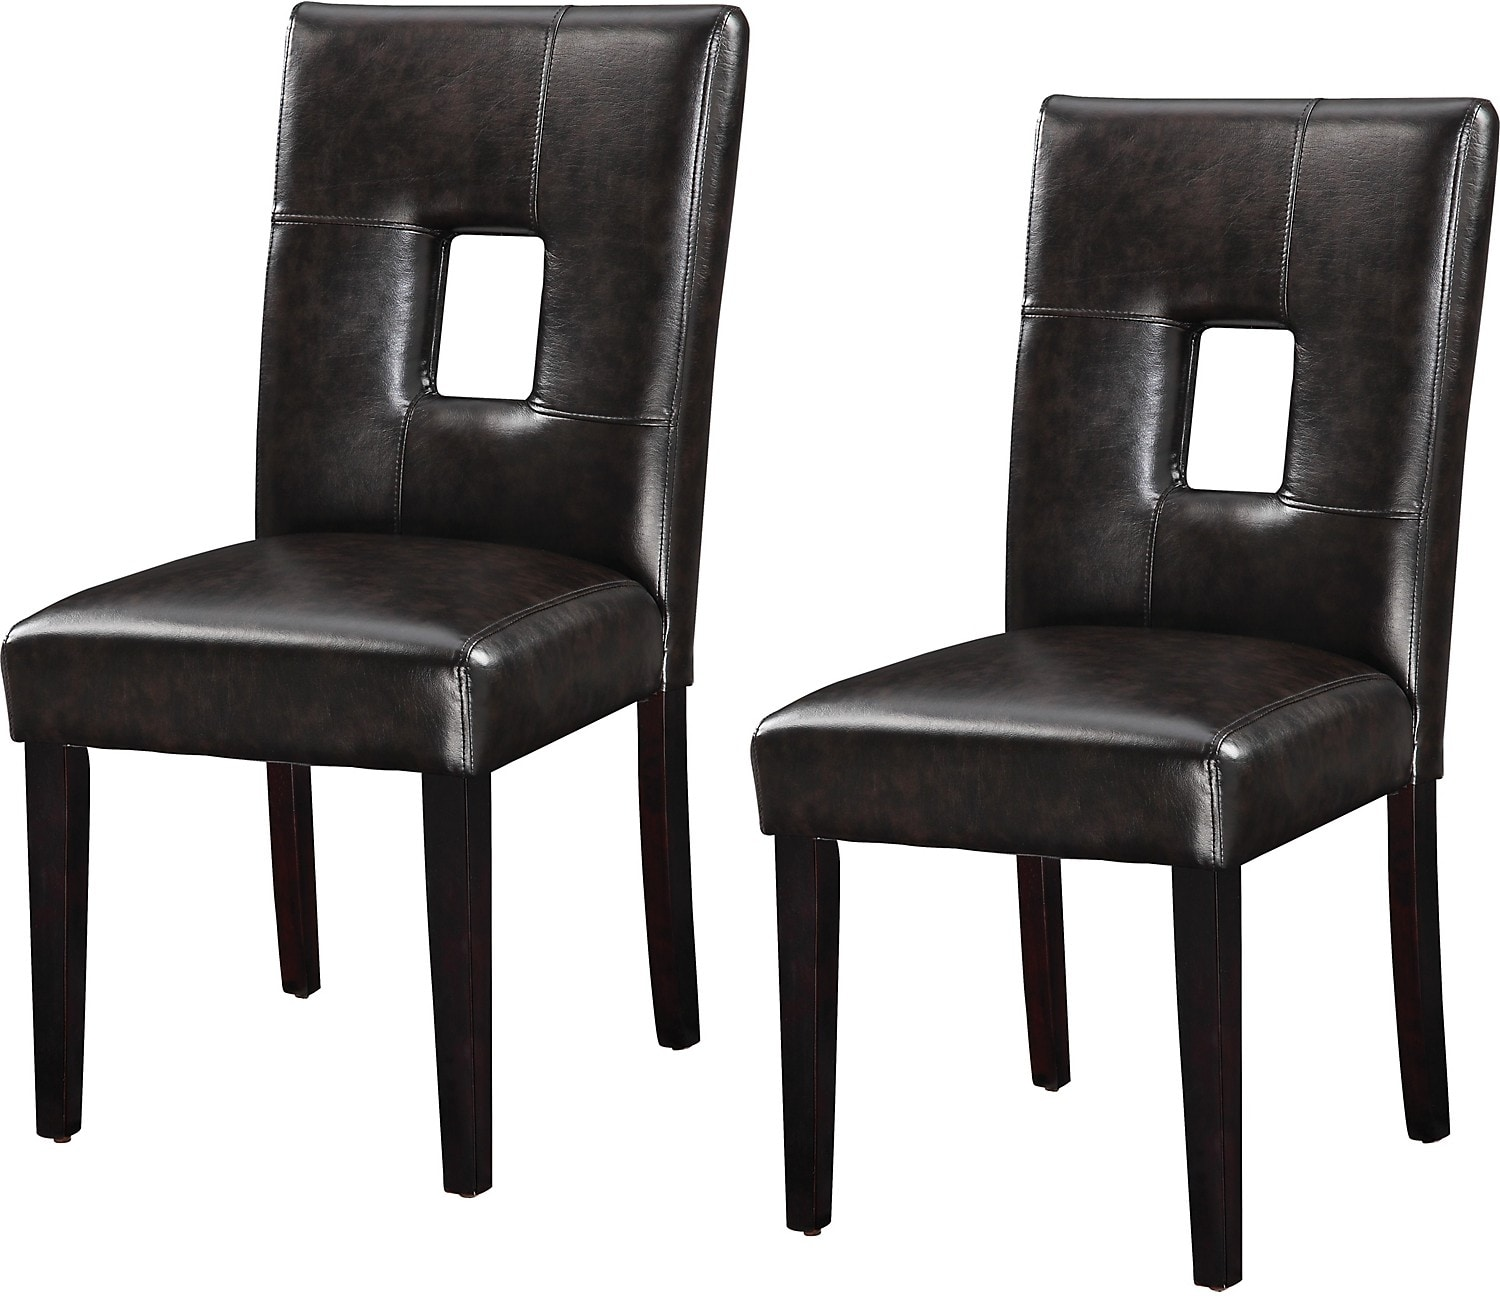 McKena Faux Leather Dining Chair Brown The Brick : 333919 from www.thebrick.com size 1500 x 1296 jpeg 487kB